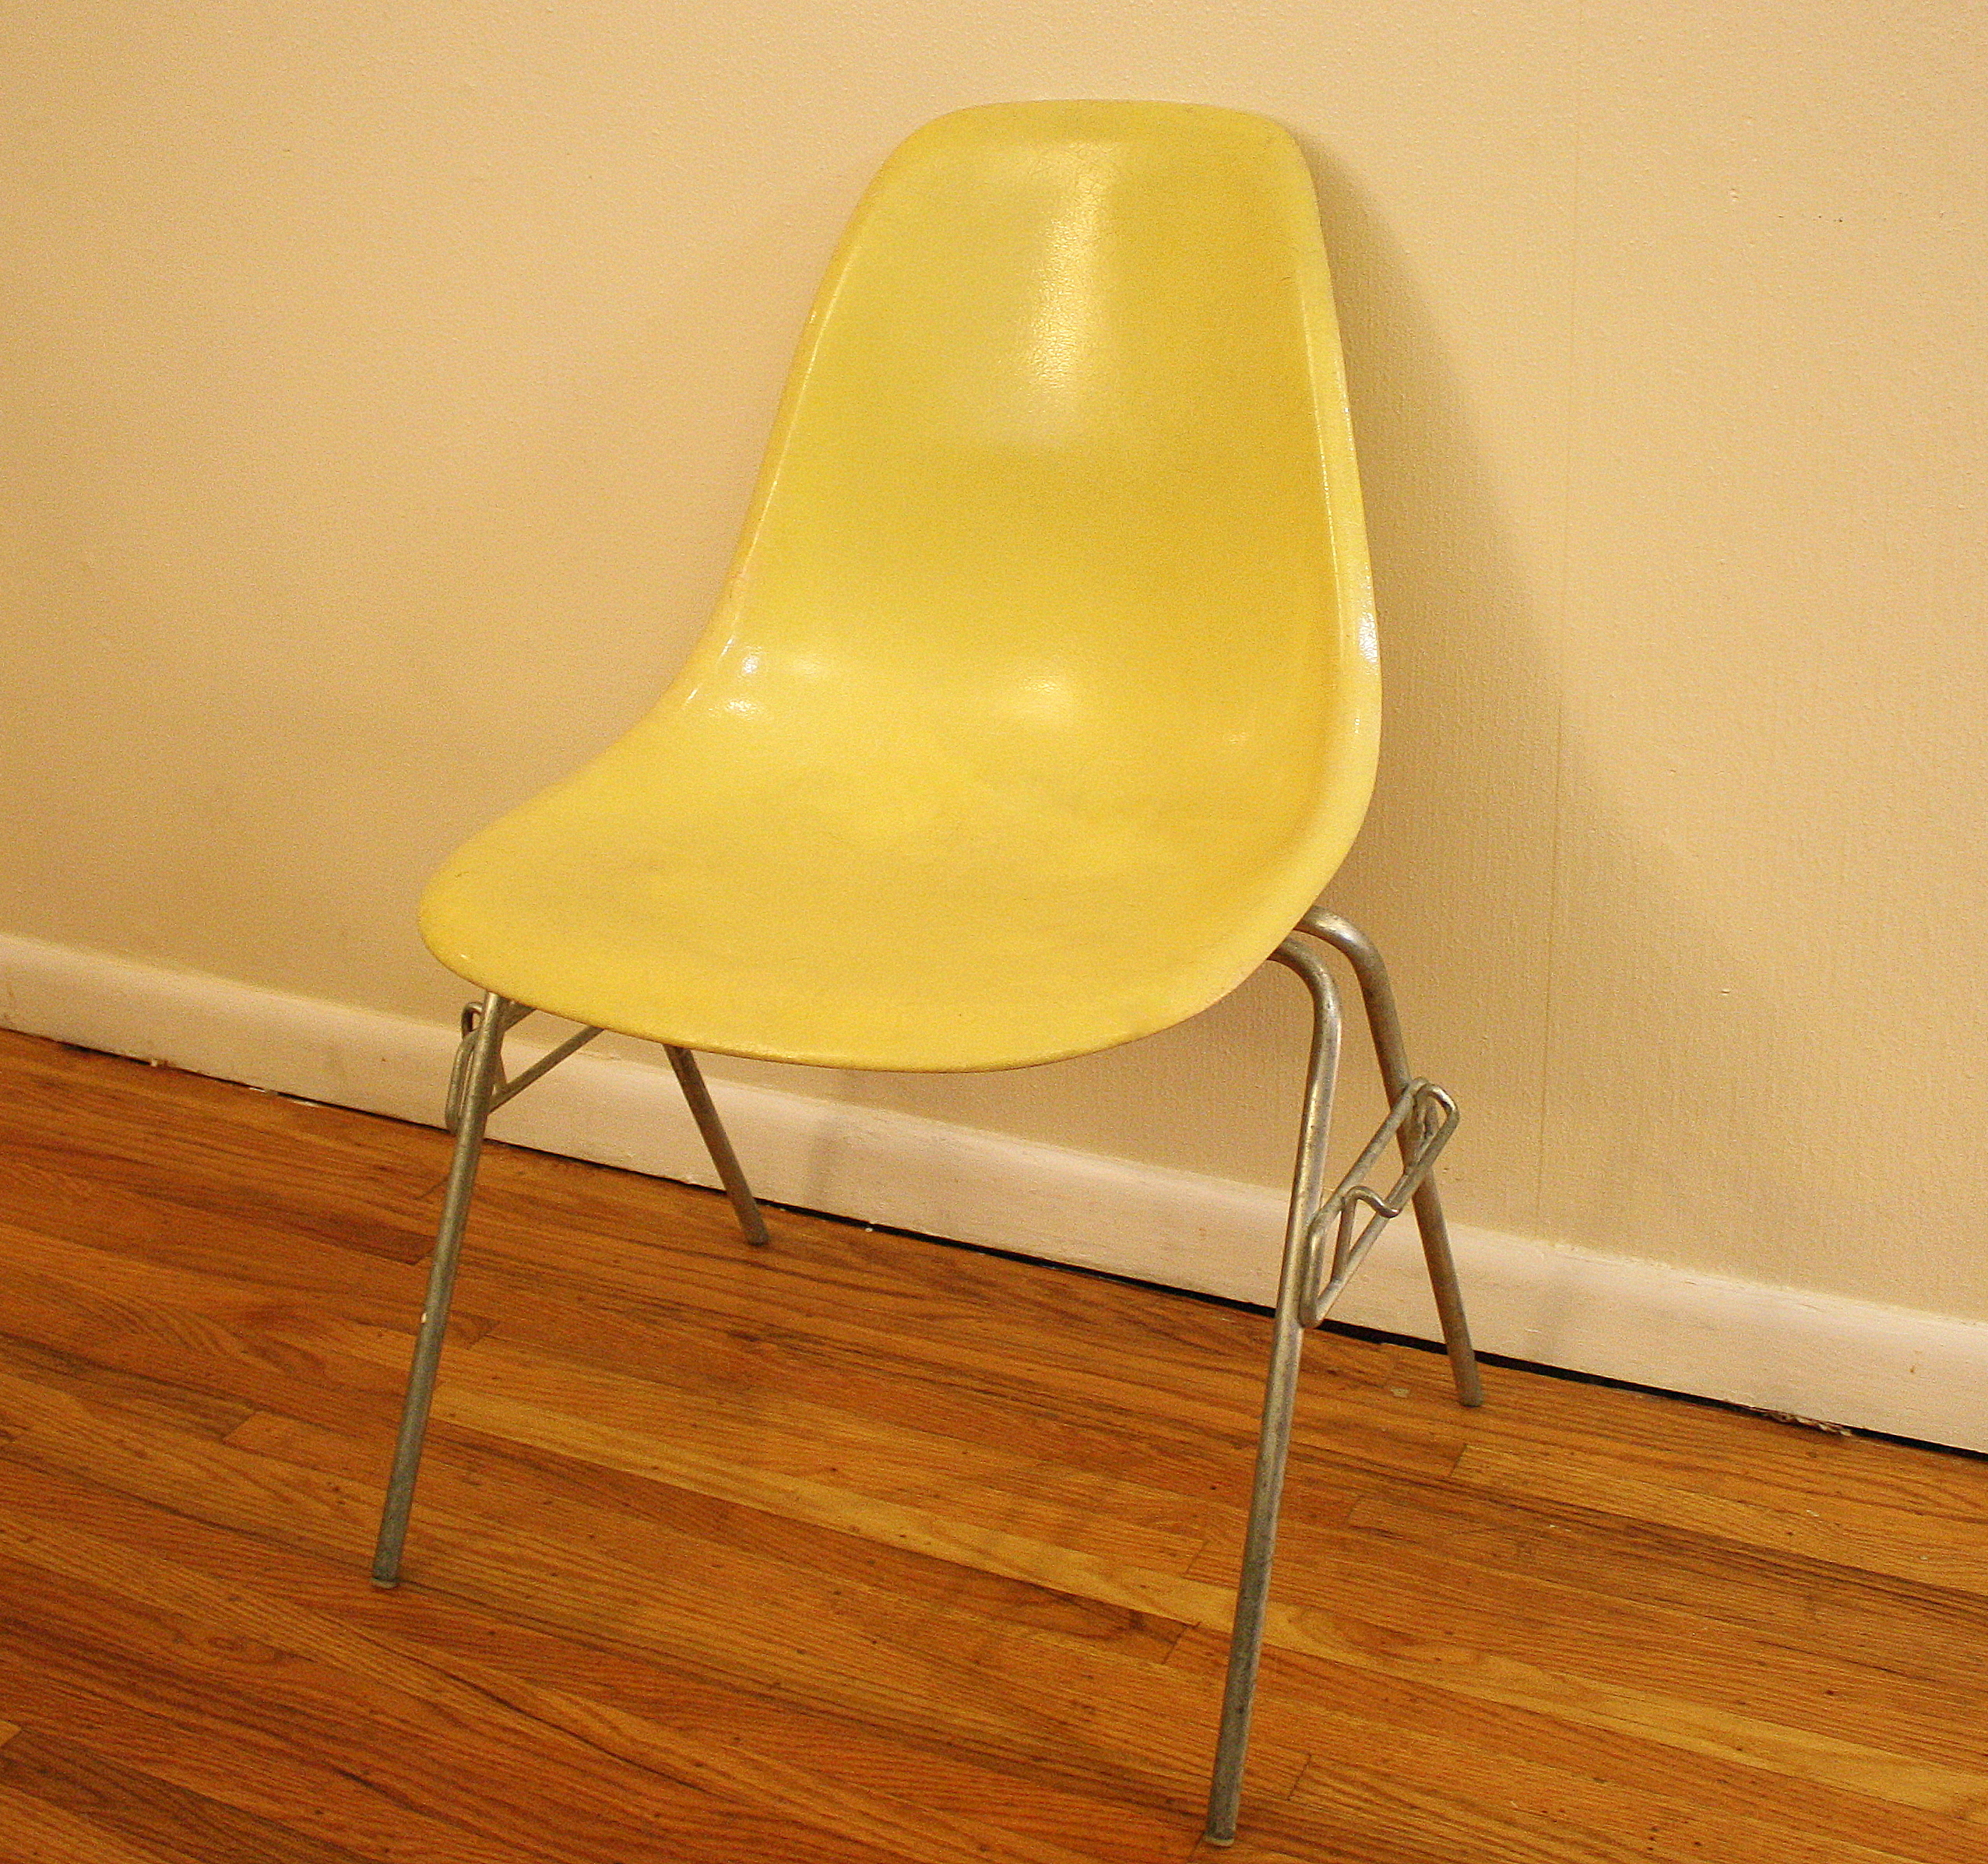 herman miller chairs vintage valencia hanging chair mid century modern fiberglass by